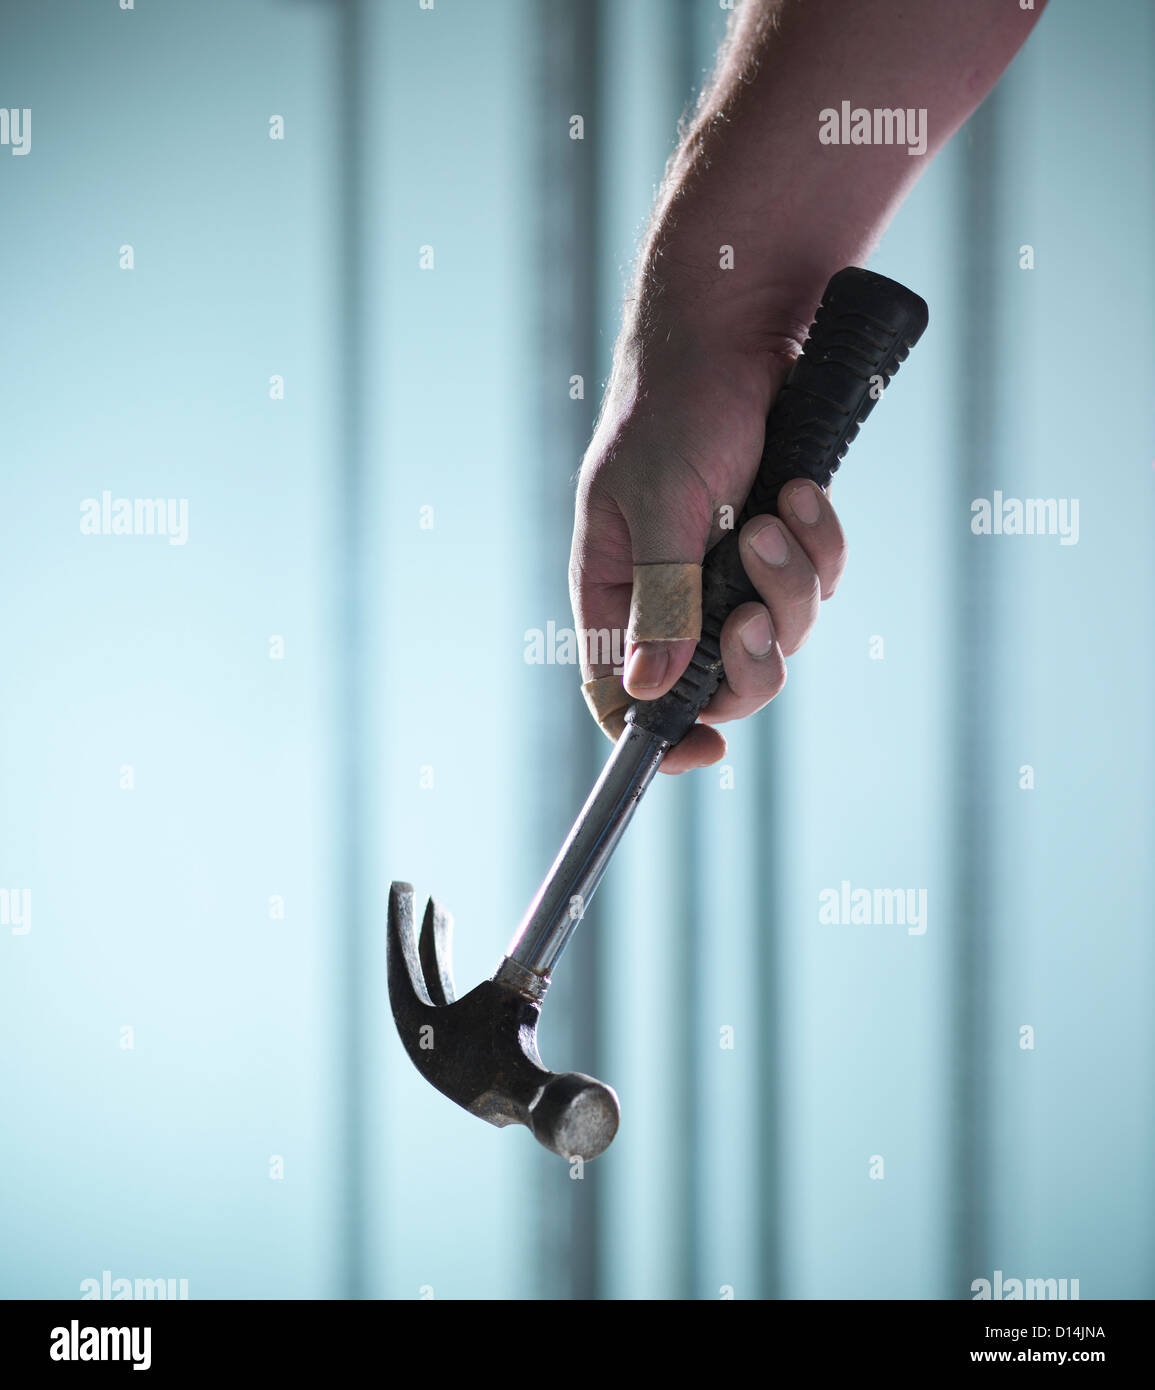 Close up of hand holding hammer - Stock Image